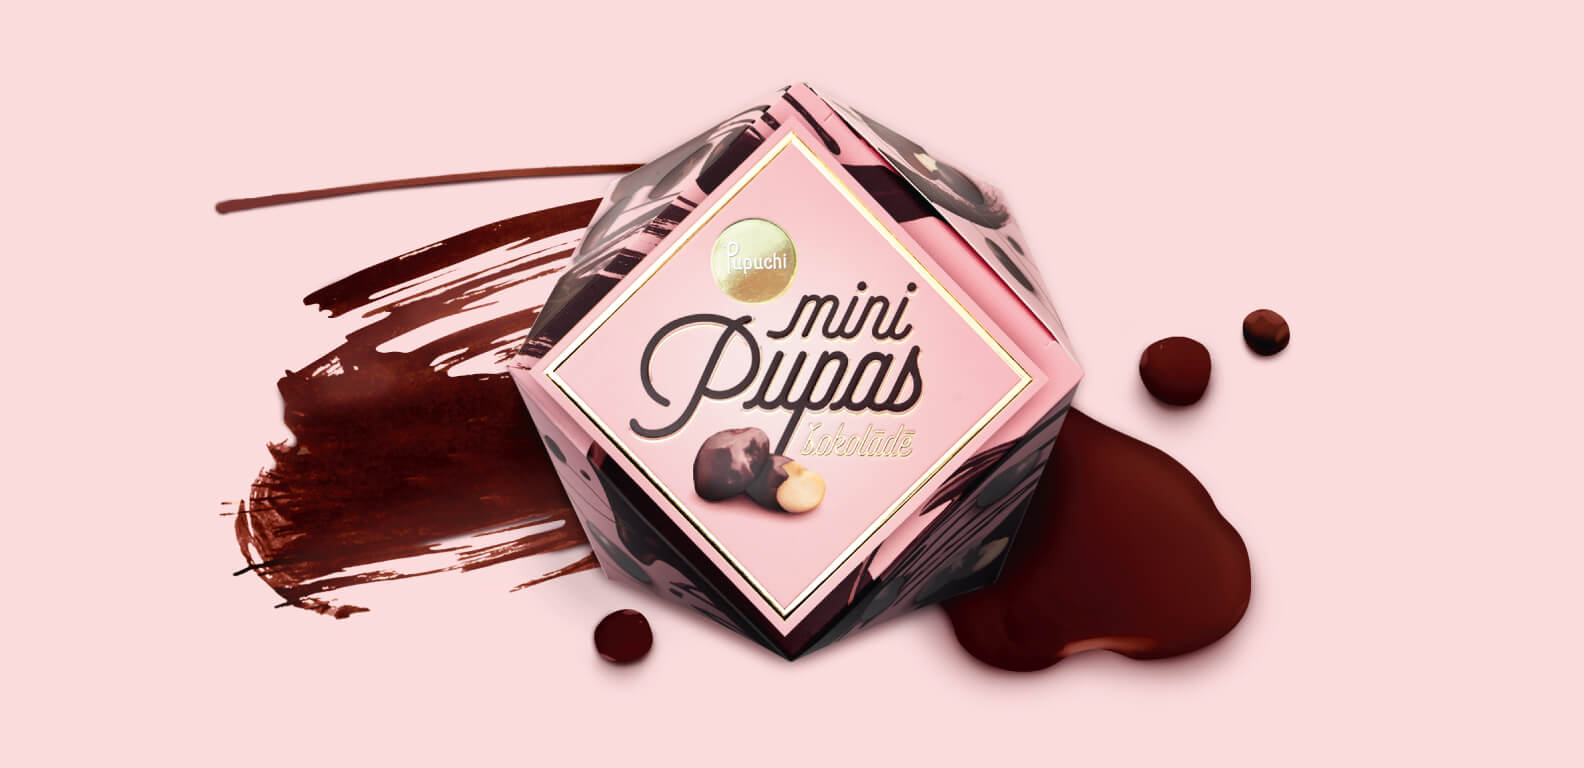 Pupuchi Mini beans in chocolate - packaging design